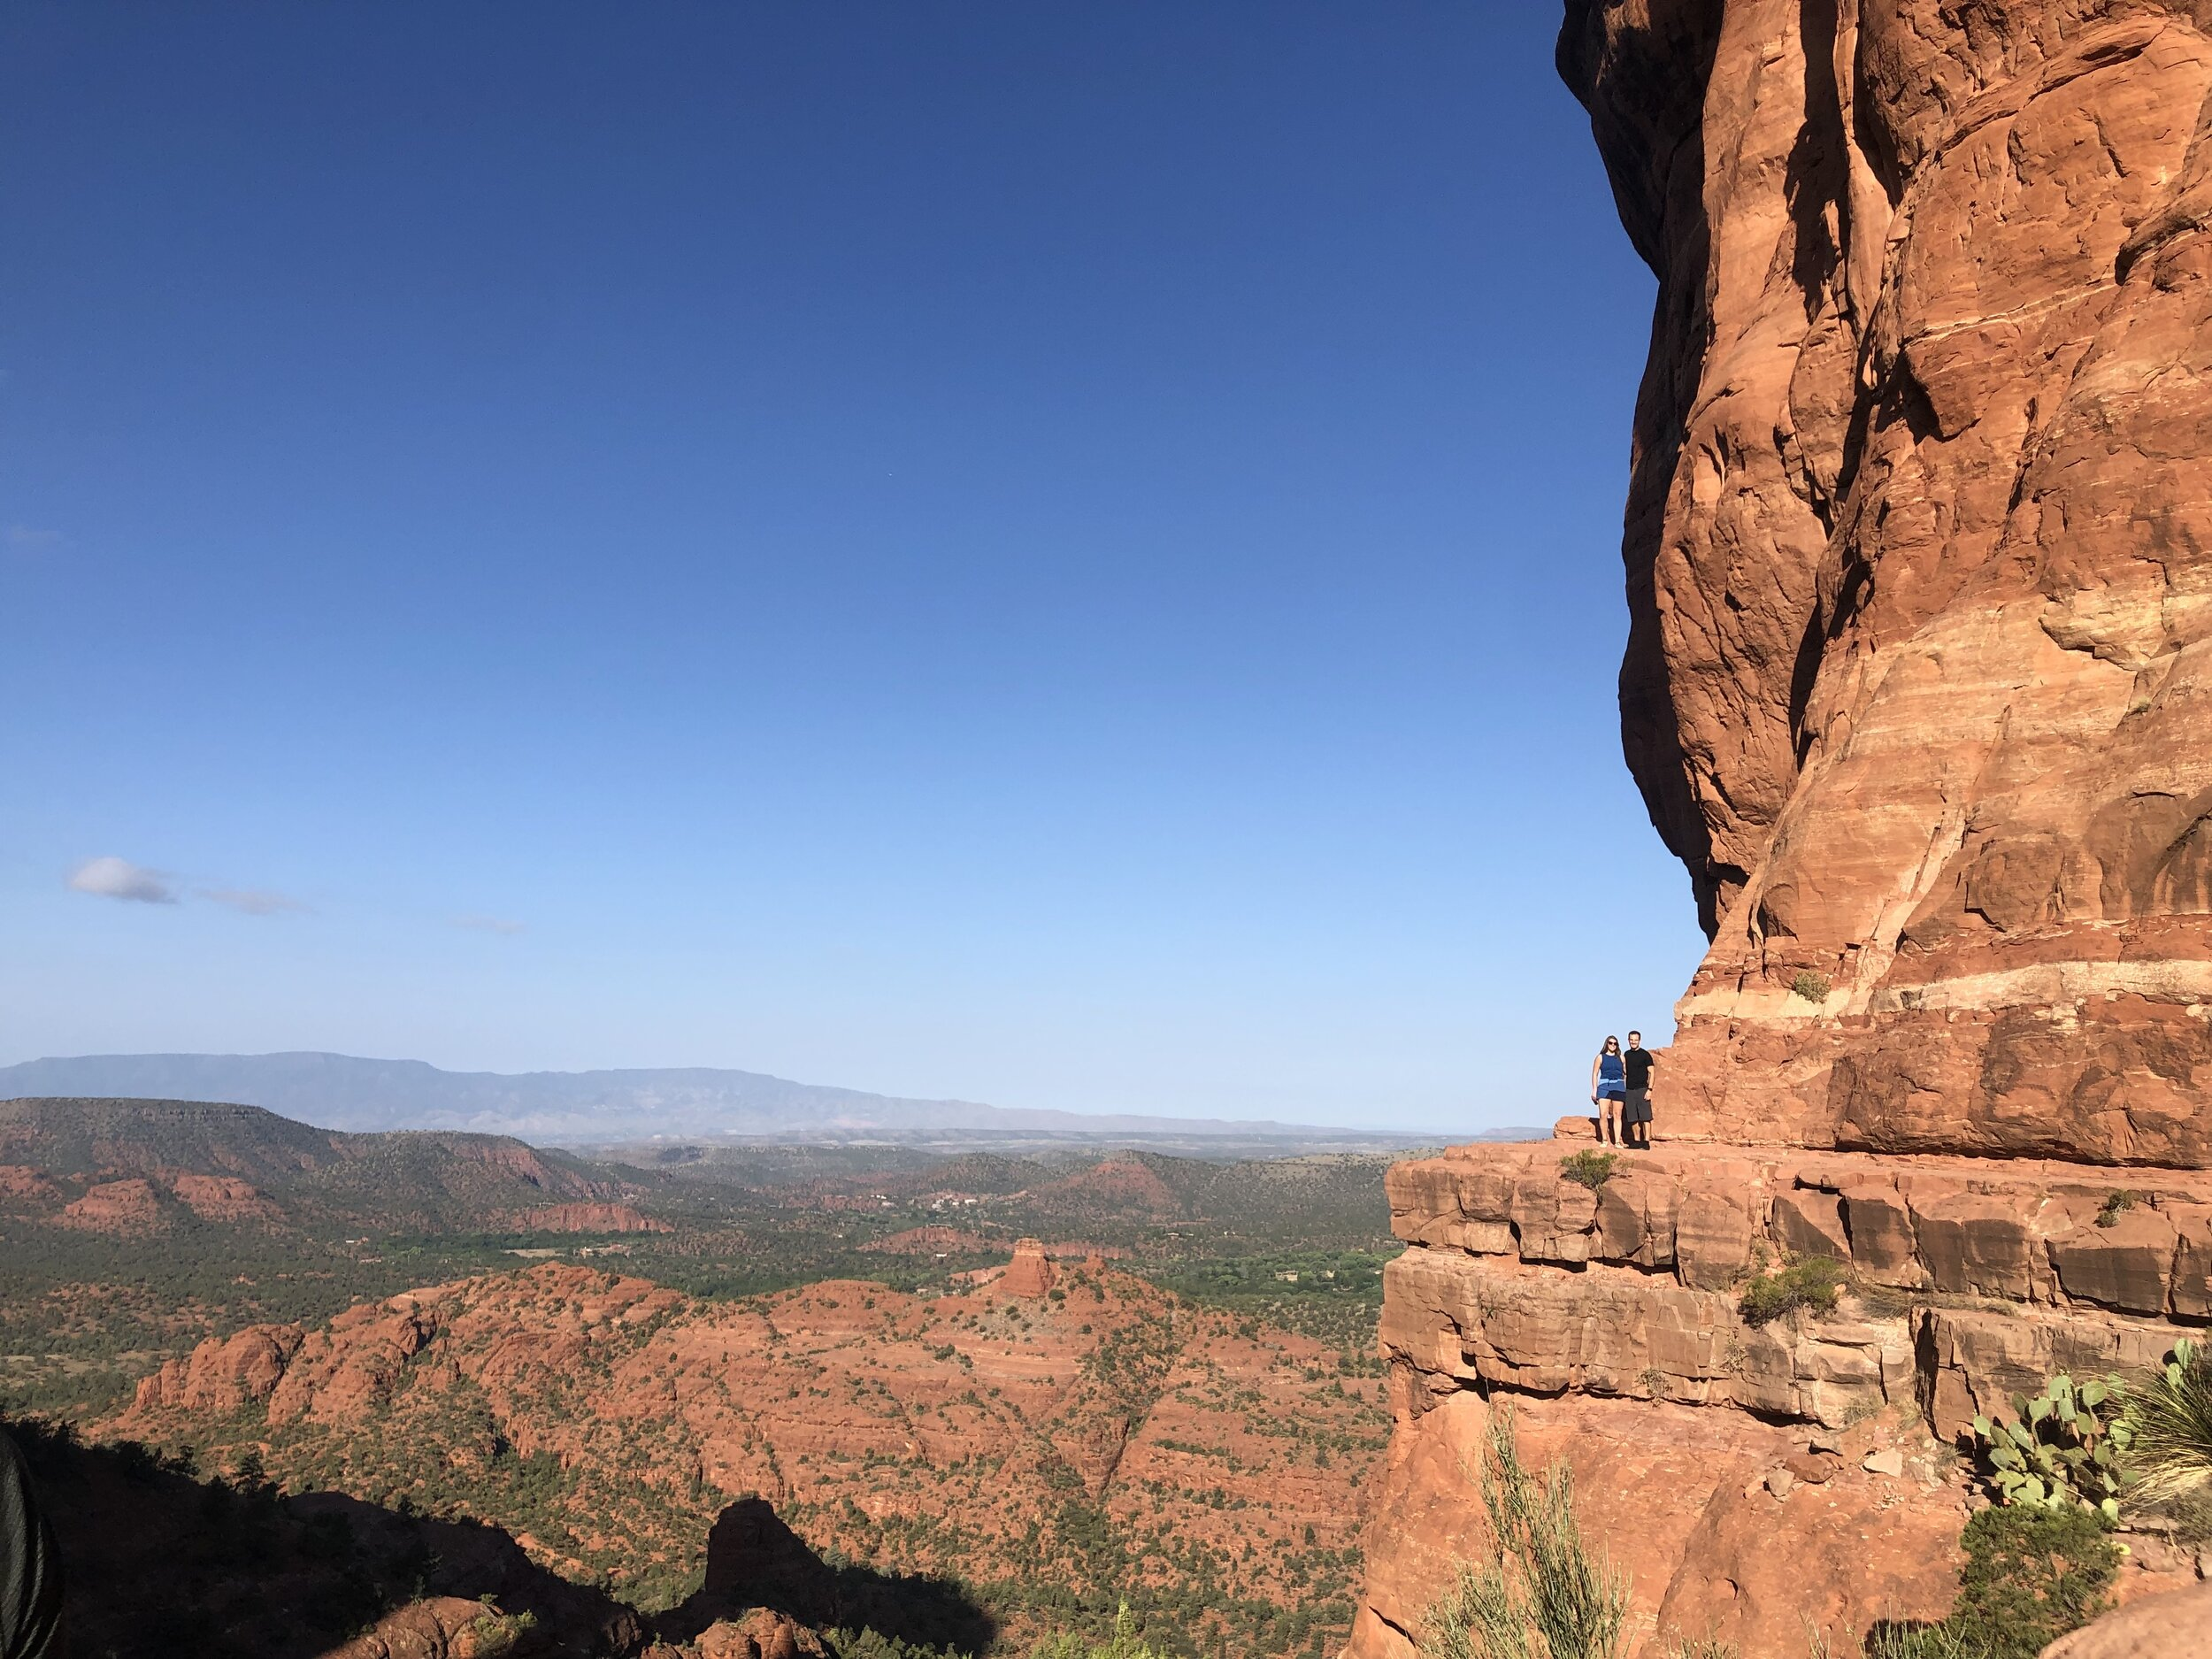 Kayla and I at the top of Cathedral Rock in Sedona, Arizona. The first big stop on our epic road trip.